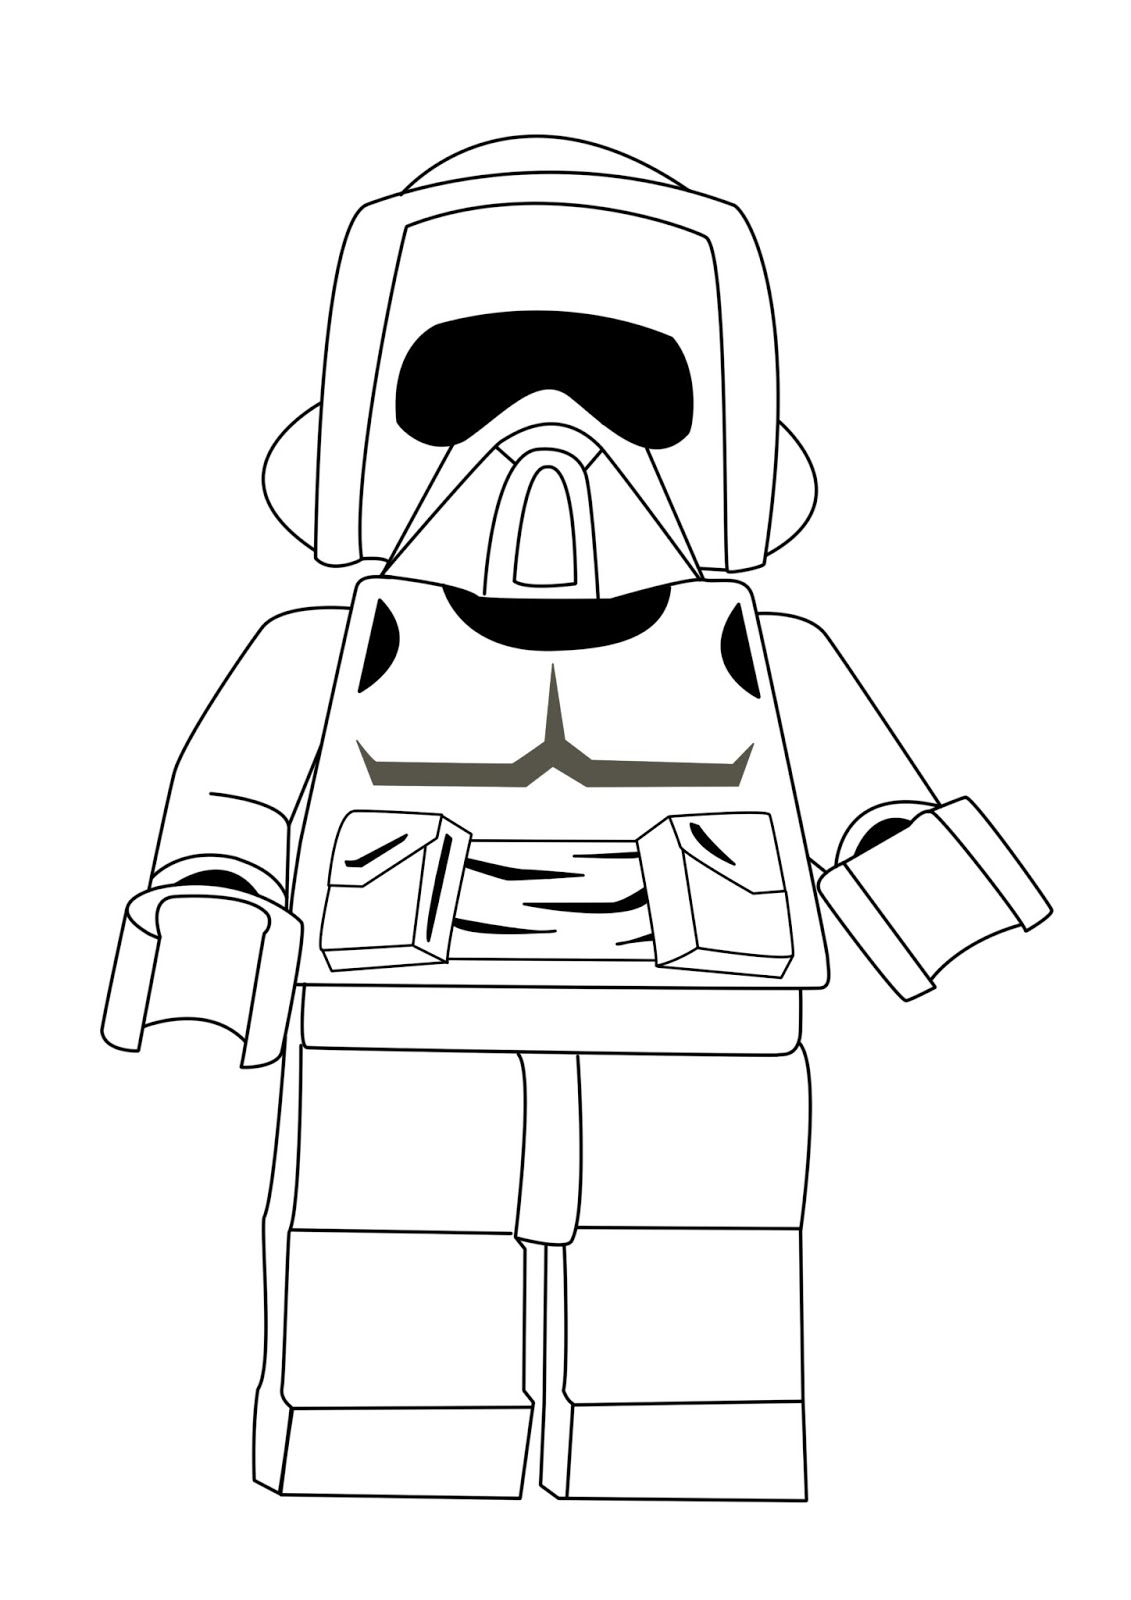 printable lego star wars coloring pages lego star wars coloring pages free bestappsforkidscom lego coloring printable star wars pages